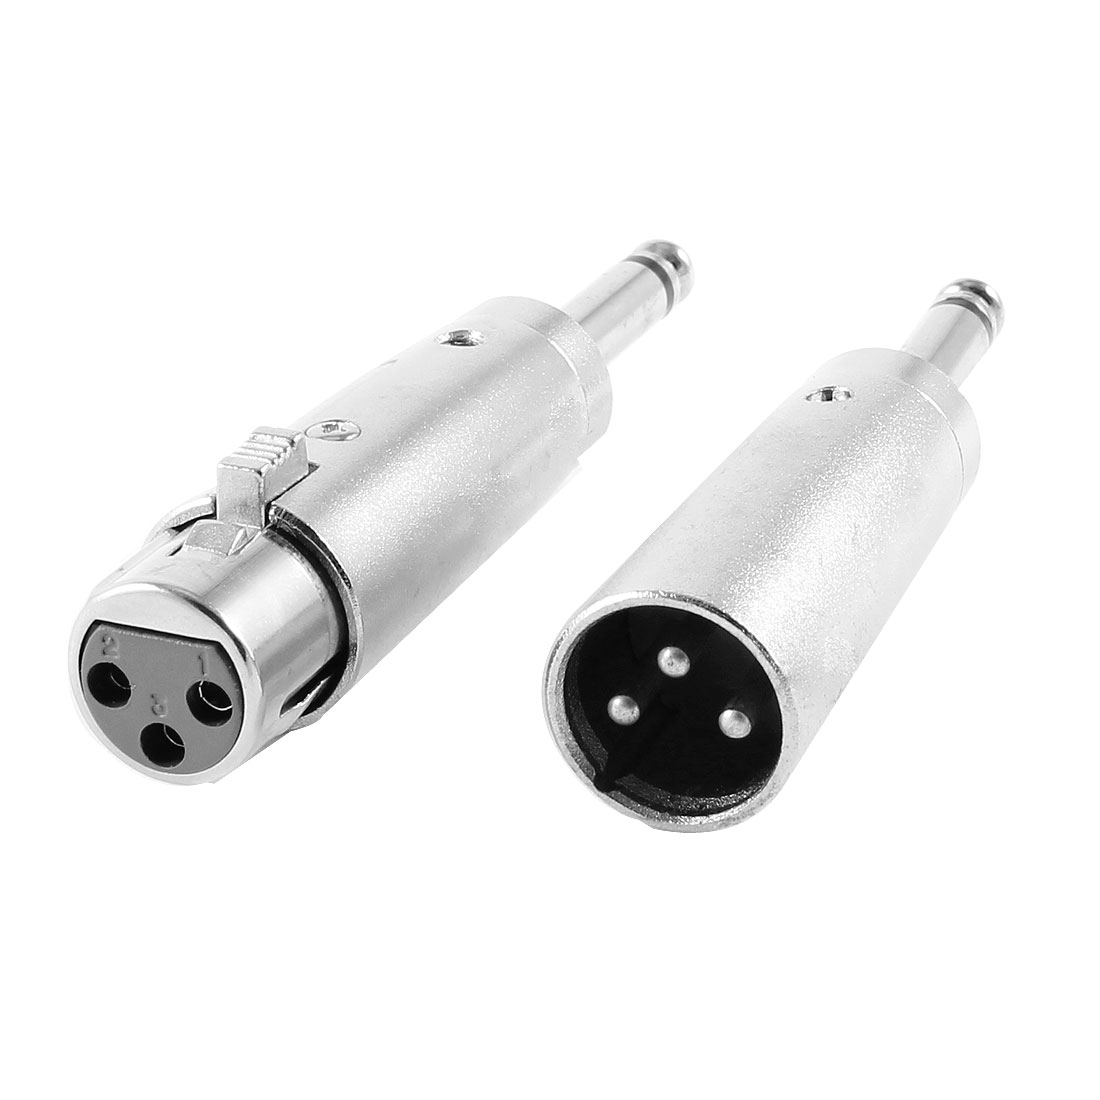 "Pair XLR 3 Pin Female + Male to 6.35mm Mono Plug 1/4"" Jack Adapter Silver Tone"